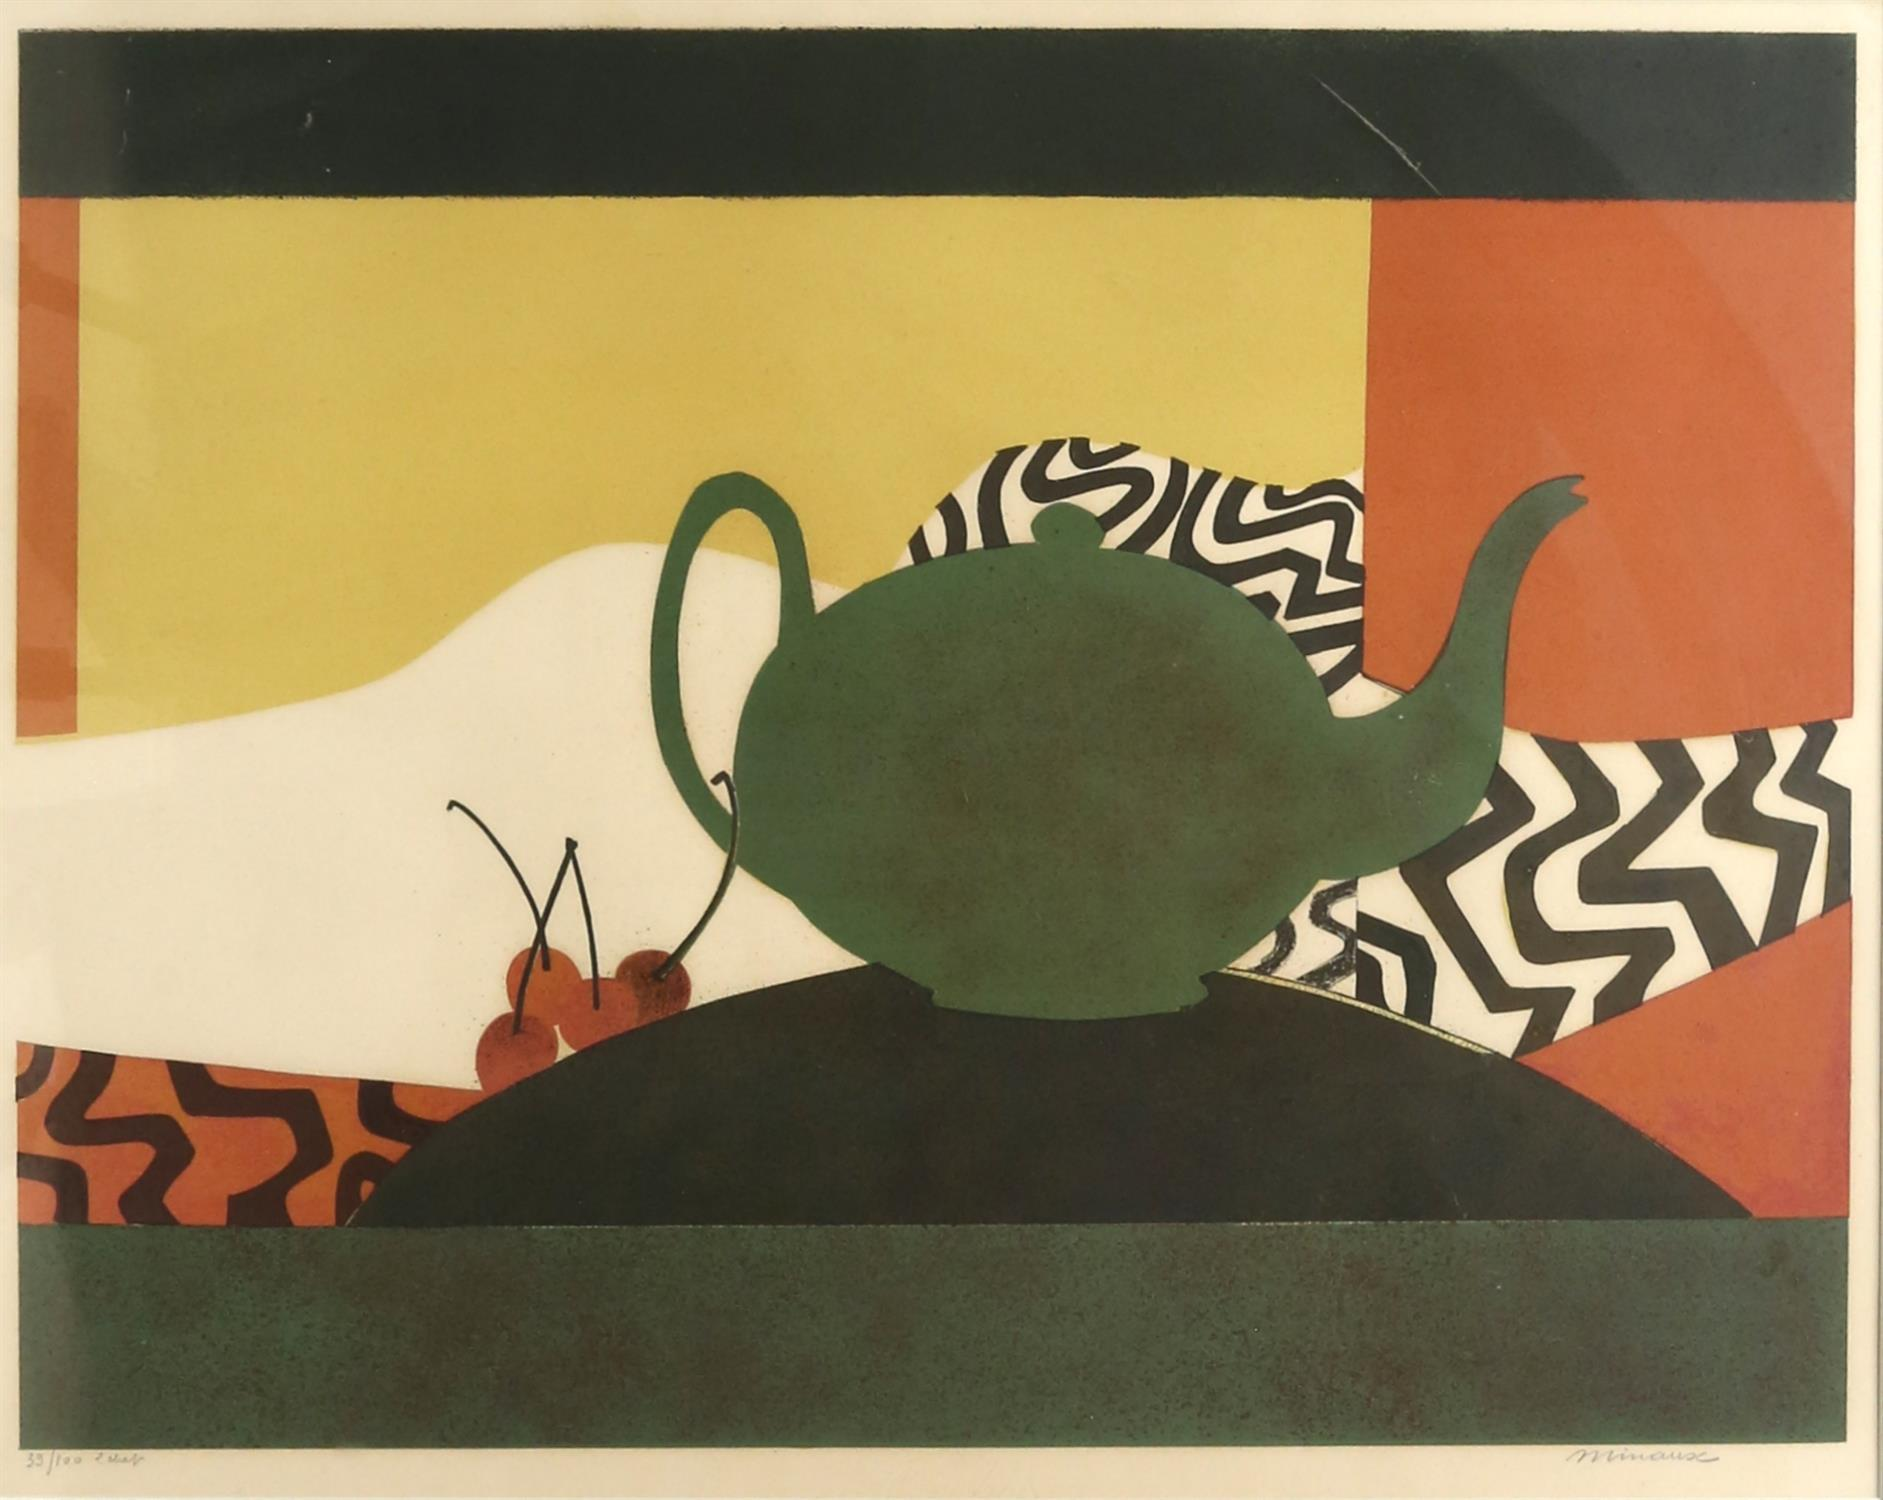 Andre Minaux (French 1923-1986). Still Life with Teapot and Cherries. Limited Edition (23/100)